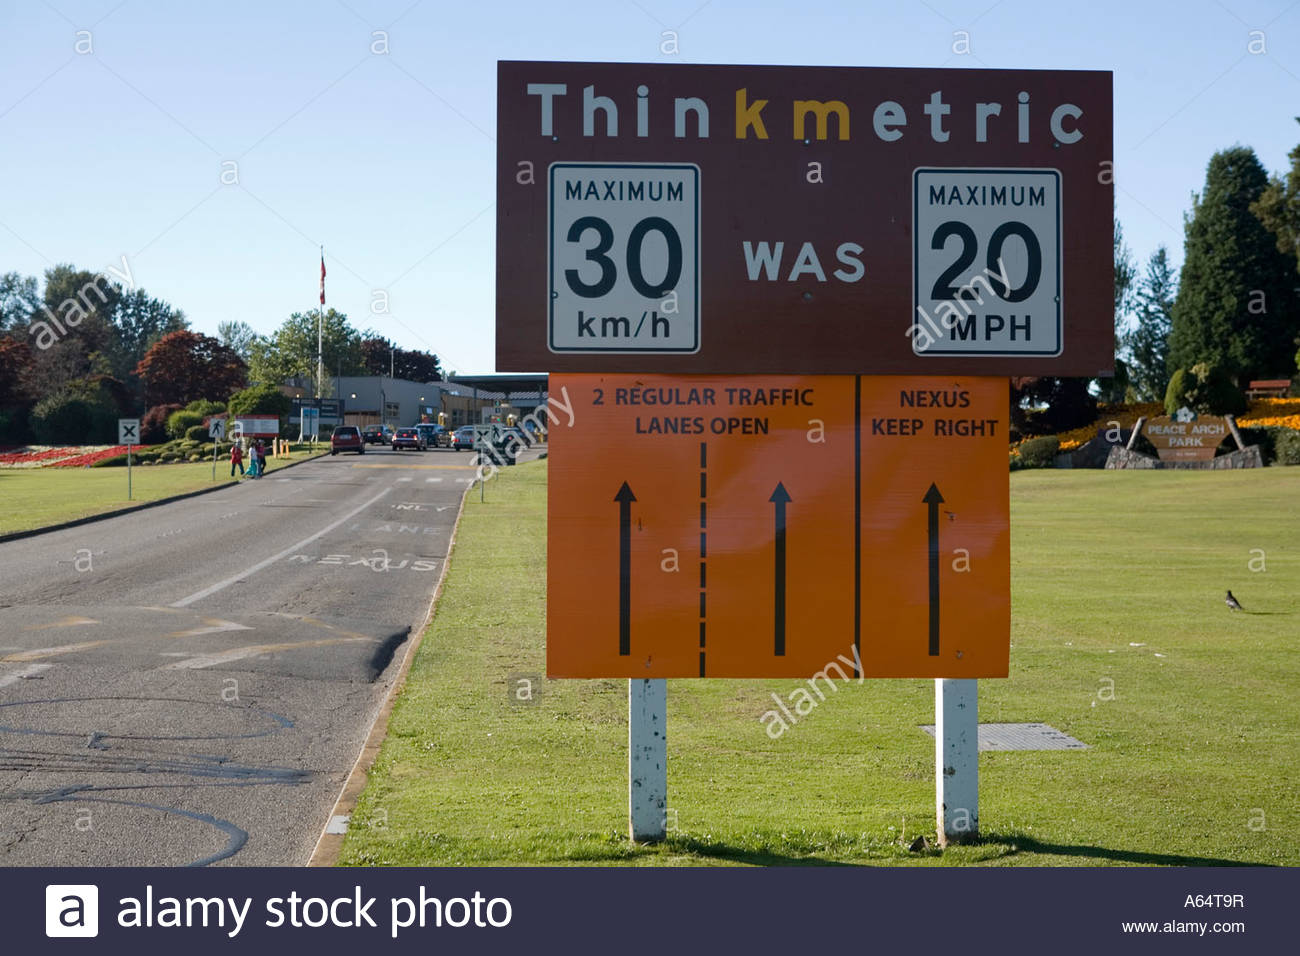 Road sign showing difference in speed limits between metric and imperial measurements - Stock Image